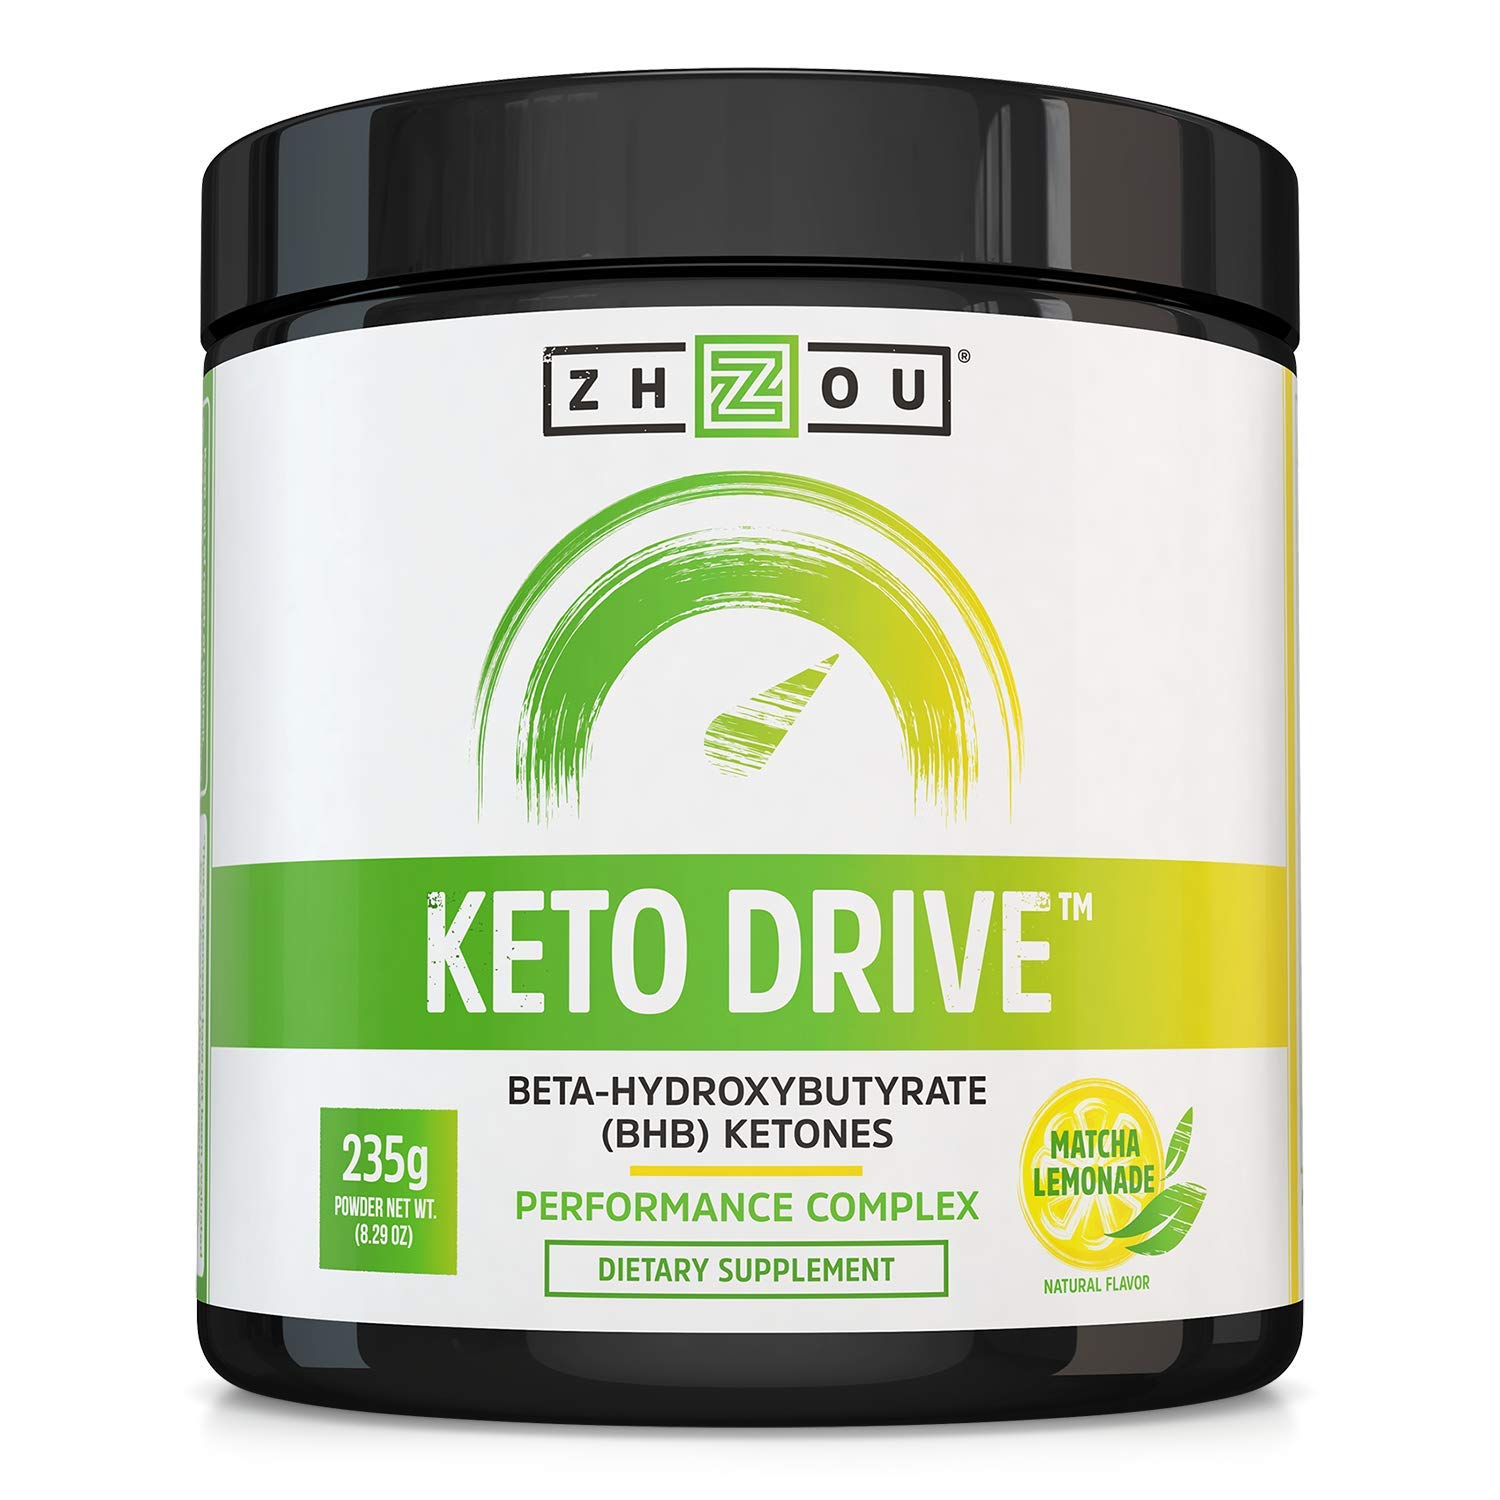 Keto Drive Exogenous Ketone Performance Complex - BHB Salts - Formulated for Ketosis, Energy and Focus - Patented Beta-Hydroxybutyrates (Calcium, Sodium, Magnesium) - Matcha Lemonade by Zhou Nutrition